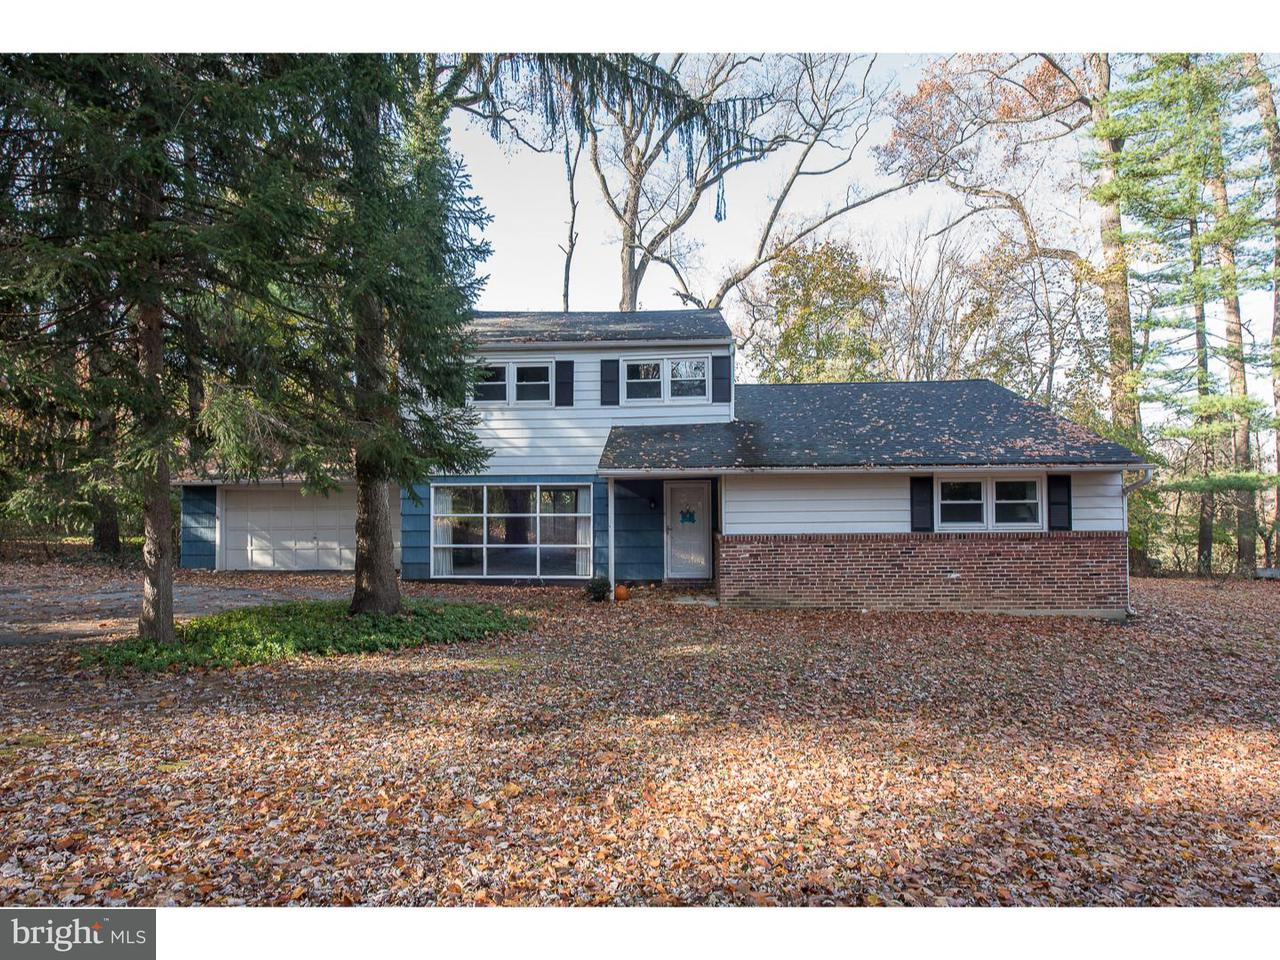 Single Family Home for Rent at 563 PUGH Road Wayne, Pennsylvania 19087 United States